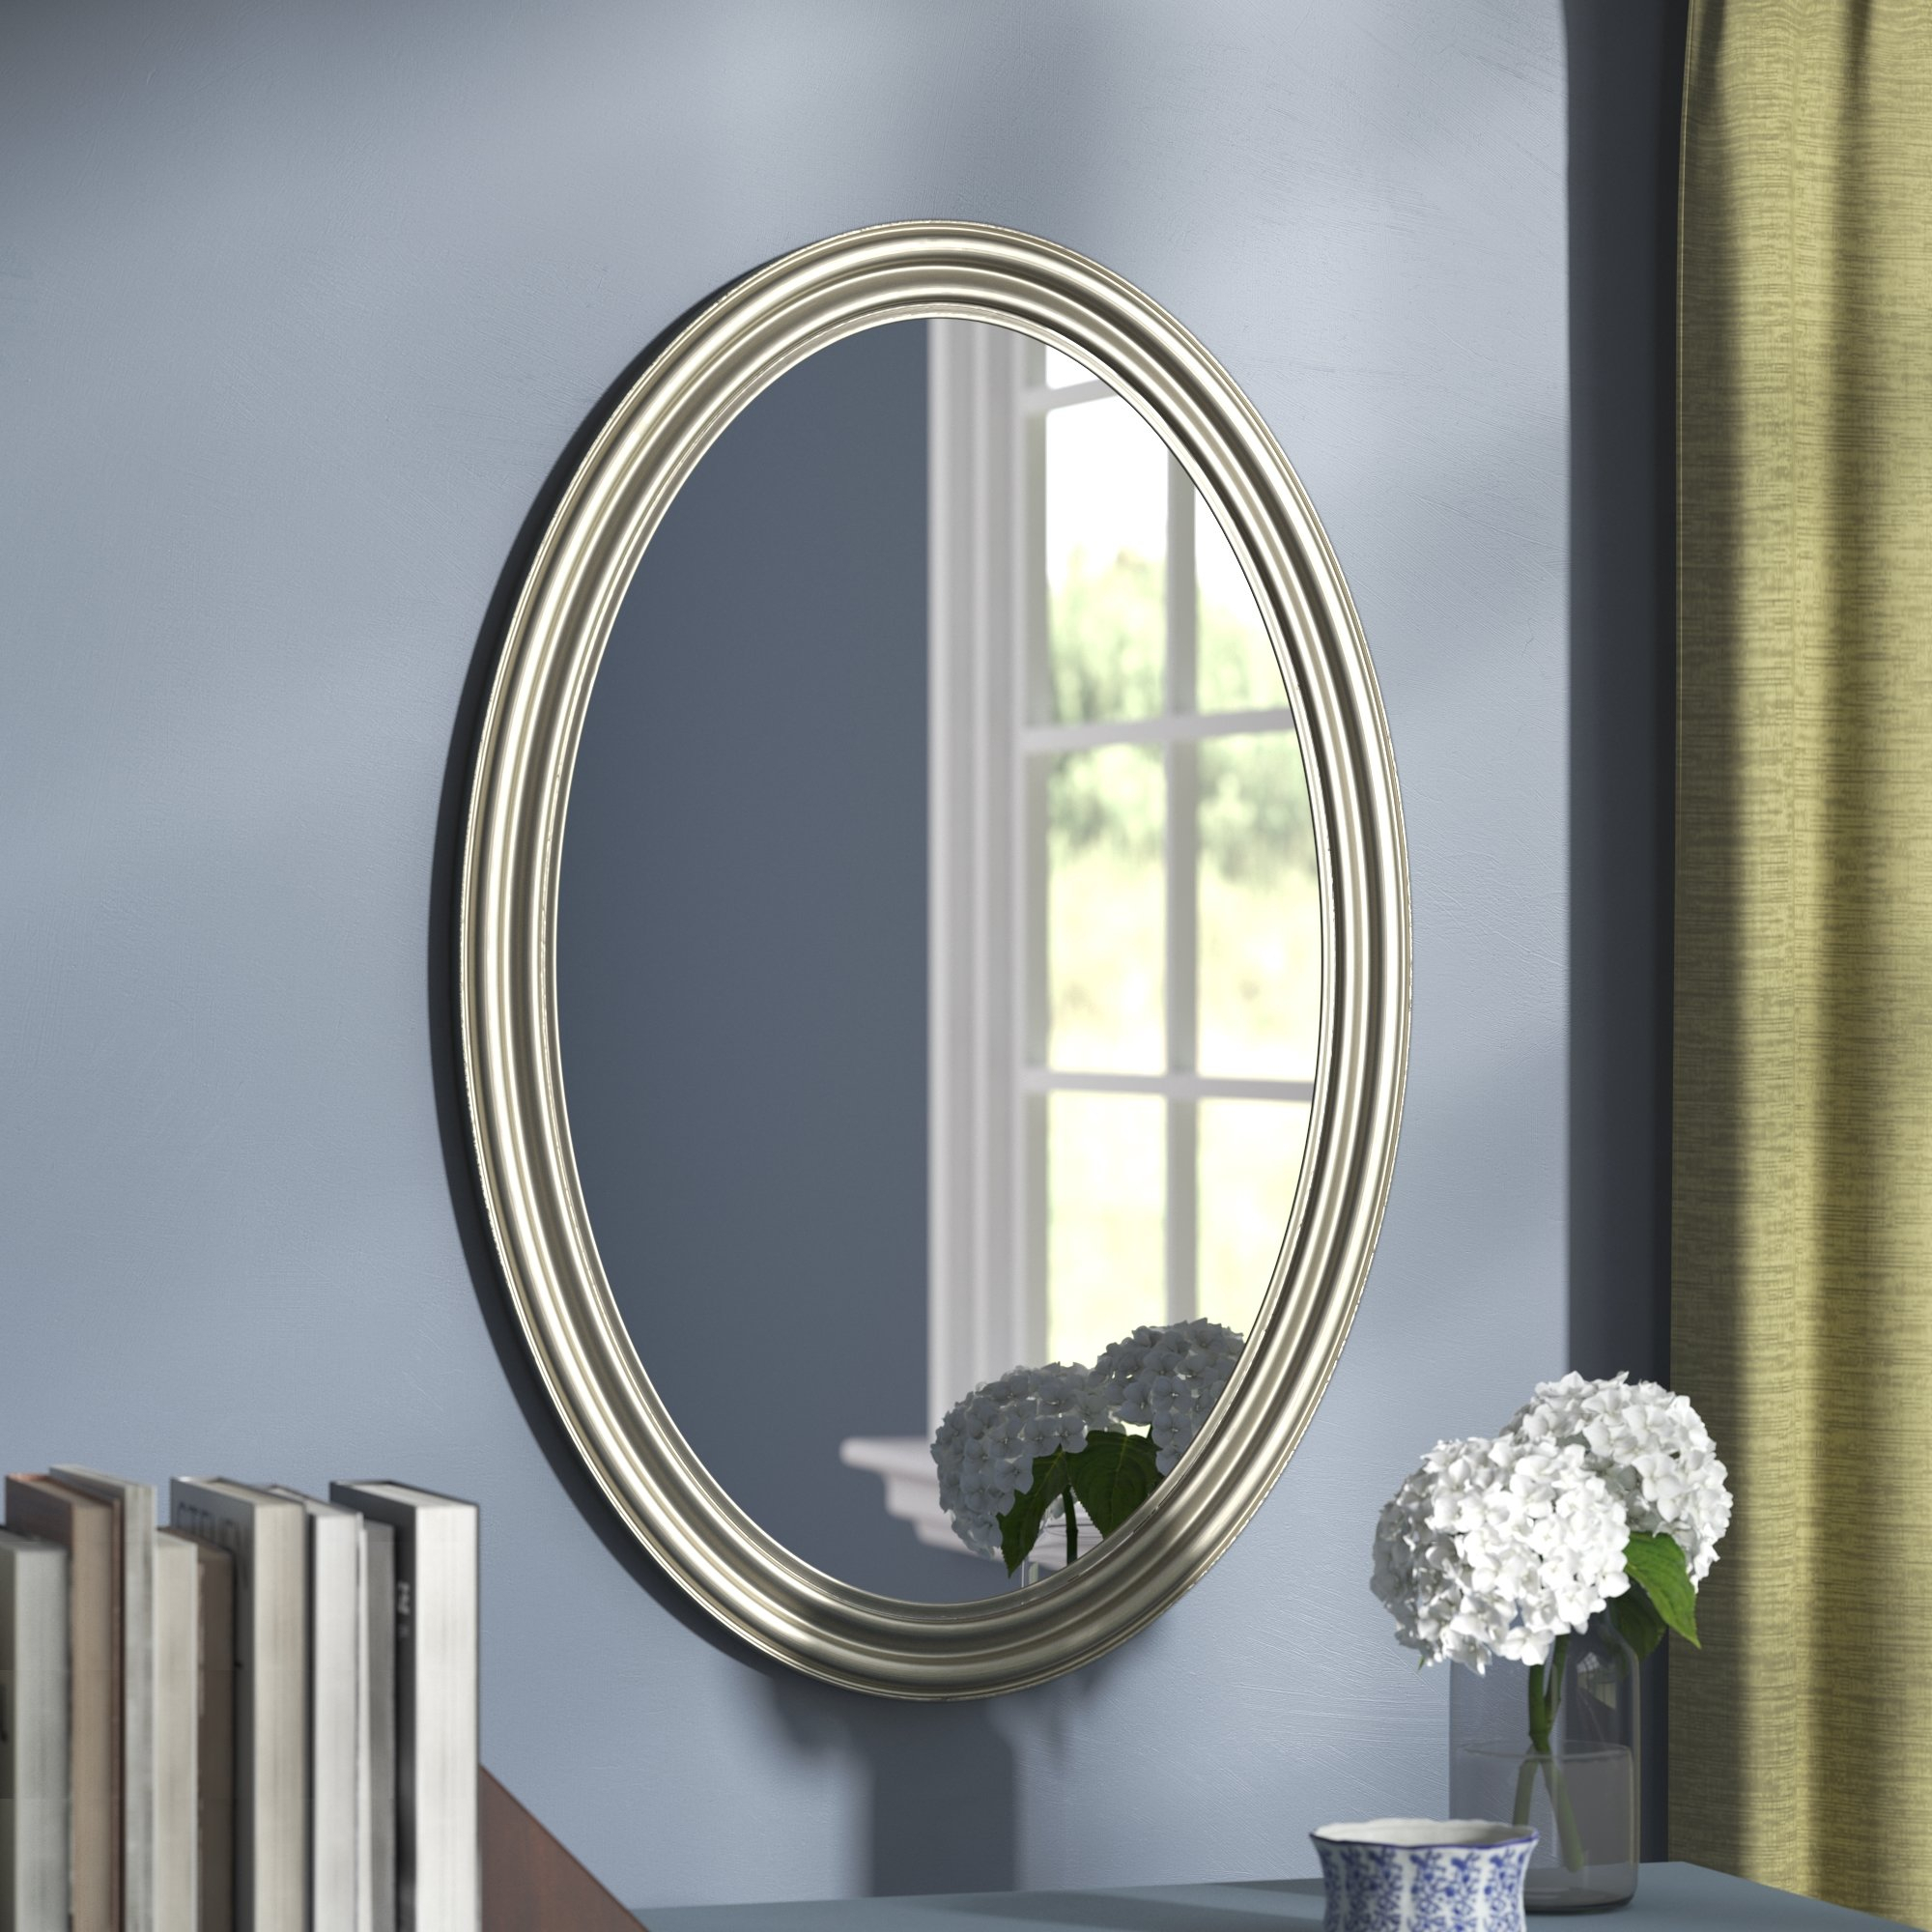 Hesson Mirror Intended For Charters Towers Accent Mirrors (View 9 of 20)